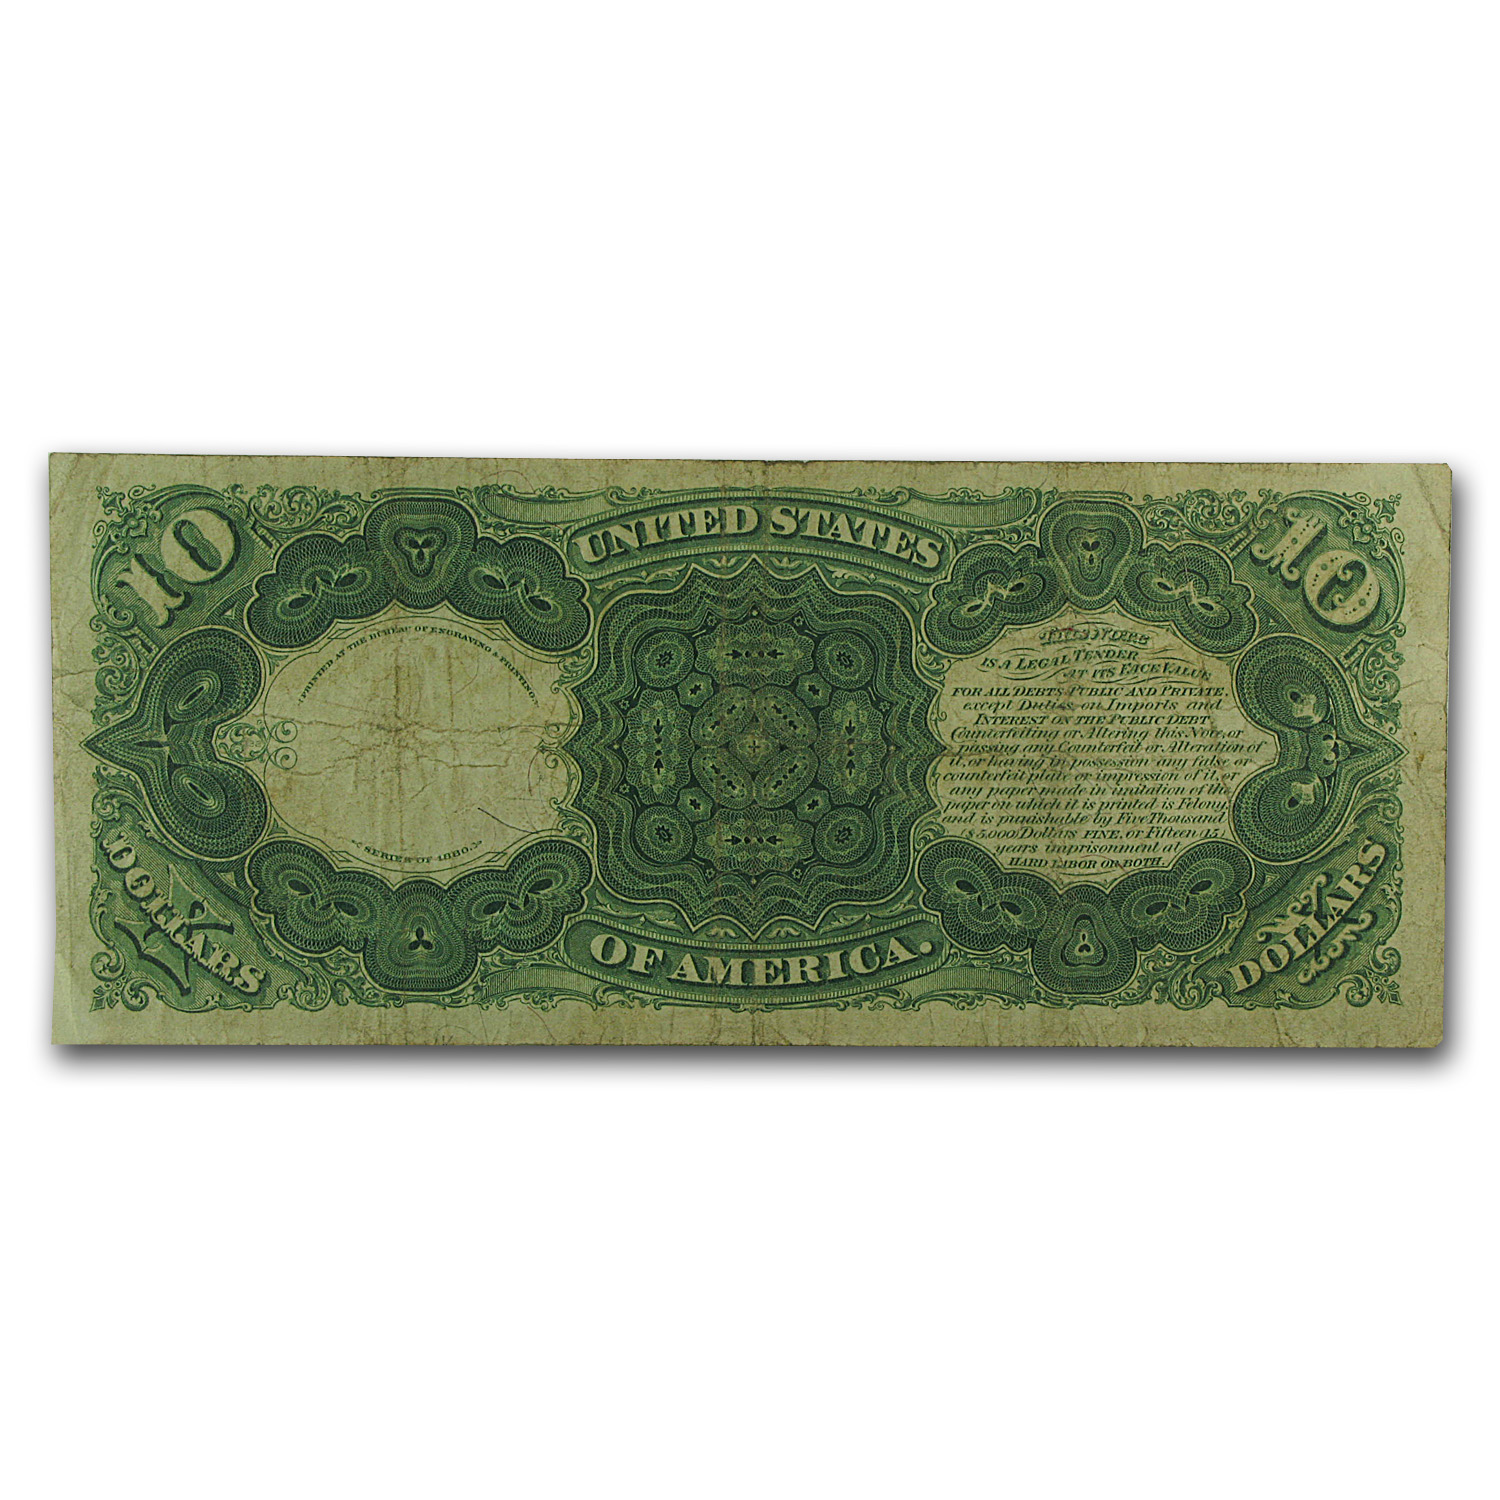 1880 $10 Legal Tender - Daniel Webster (Very Fine)